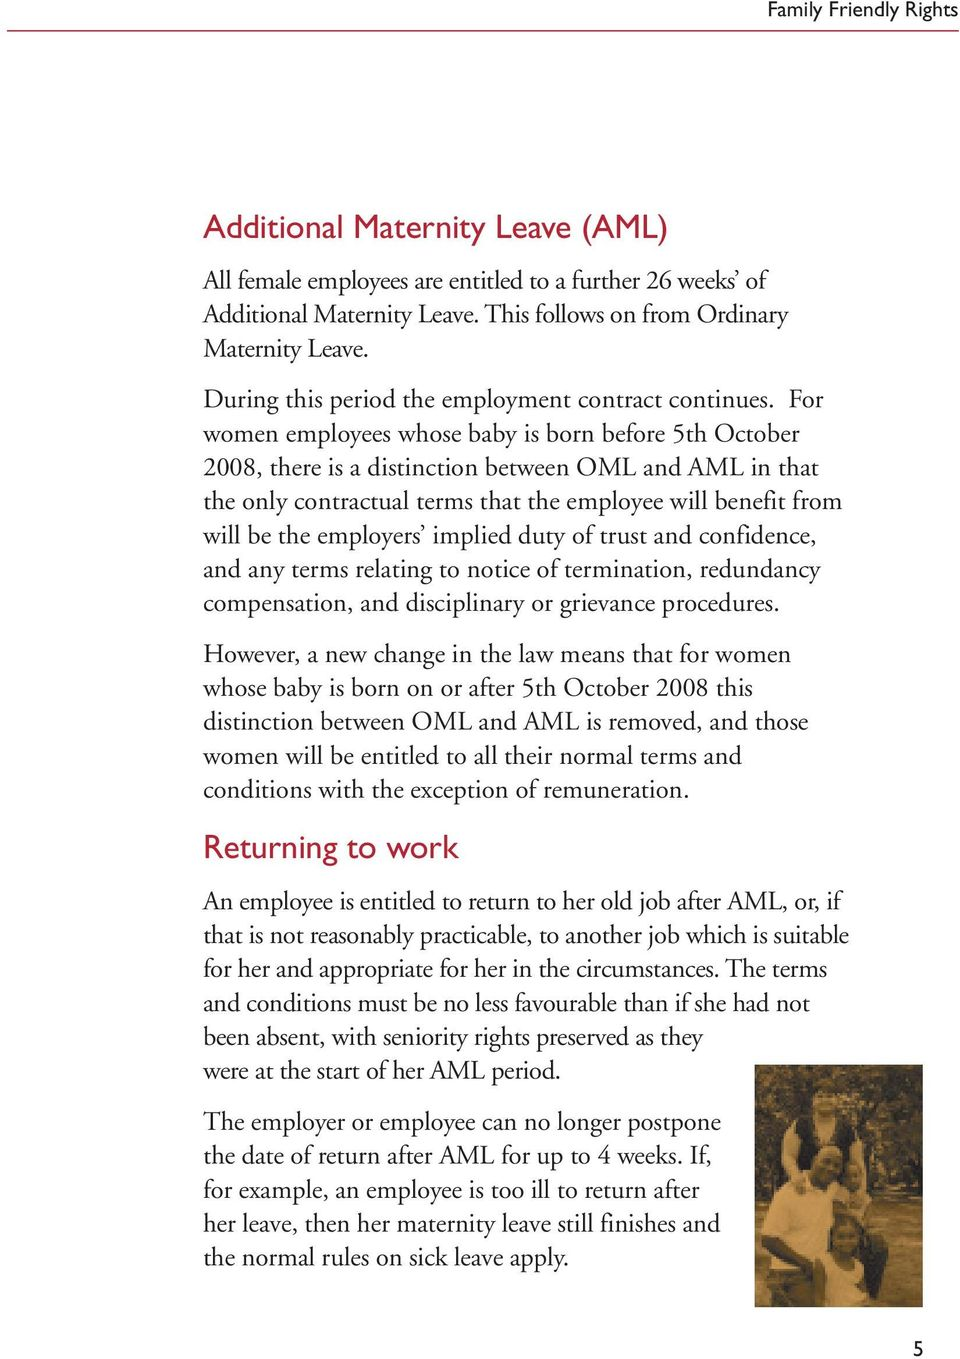 For women employees whose baby is born before 5th October 2008, there is a distinction between OML and AML in that the only contractual terms that the employee will benefit from will be the employers